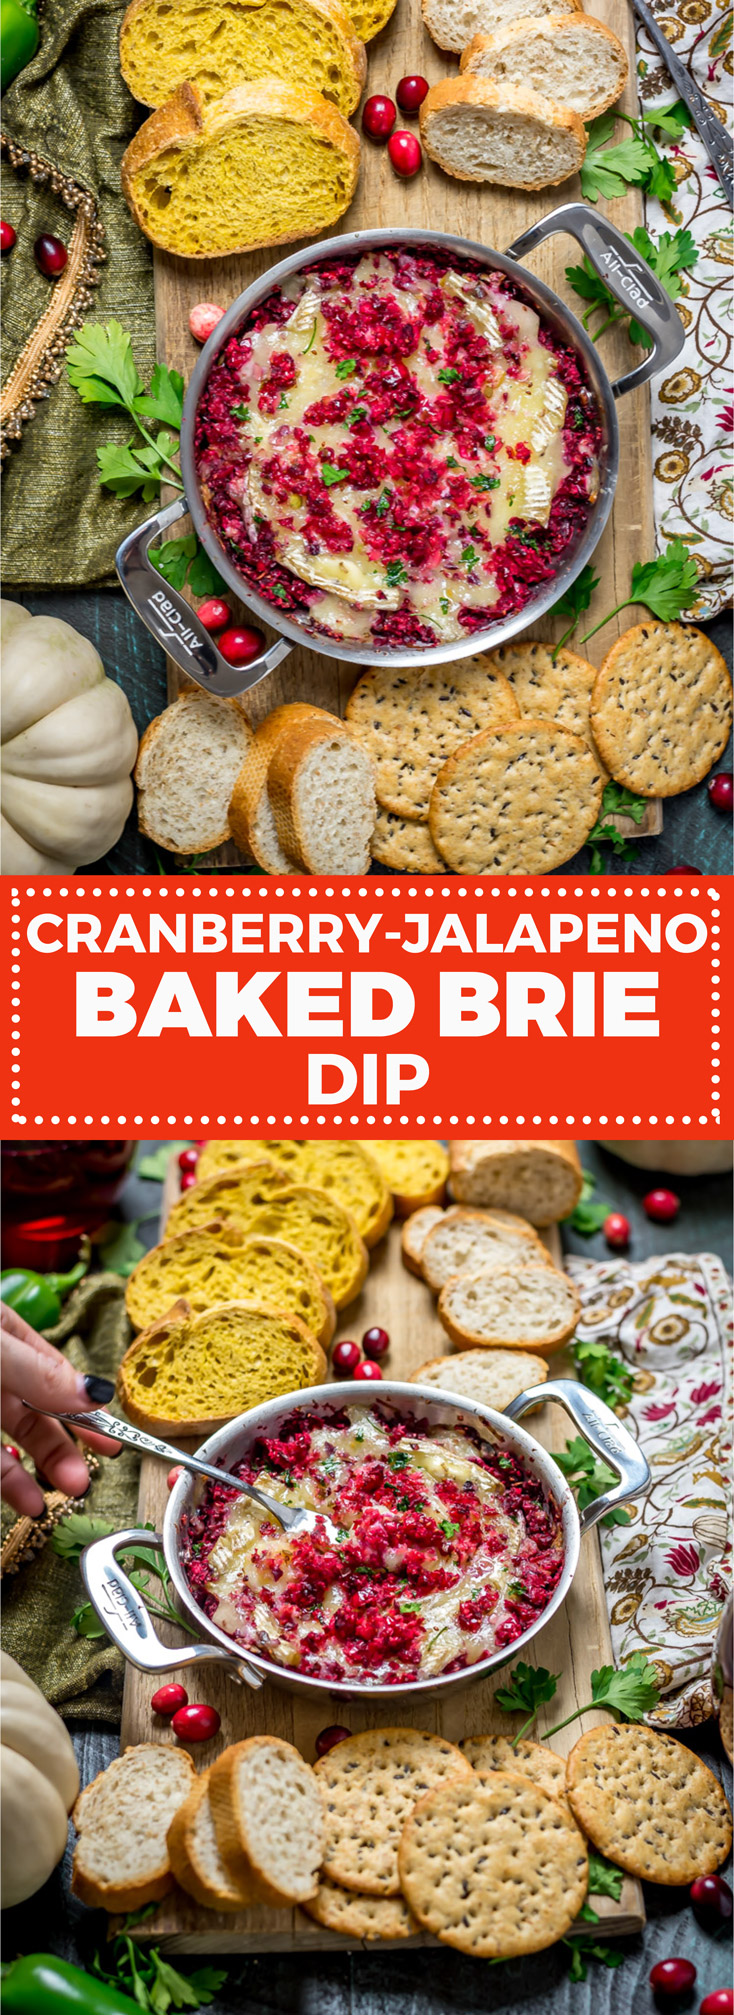 Cranberry-Jalapeno Baked Brie Dip. Tart cranberries, spicy jalapenos, and brown sugar transform brie cheese into a hit party dip. | hostthetoast.com